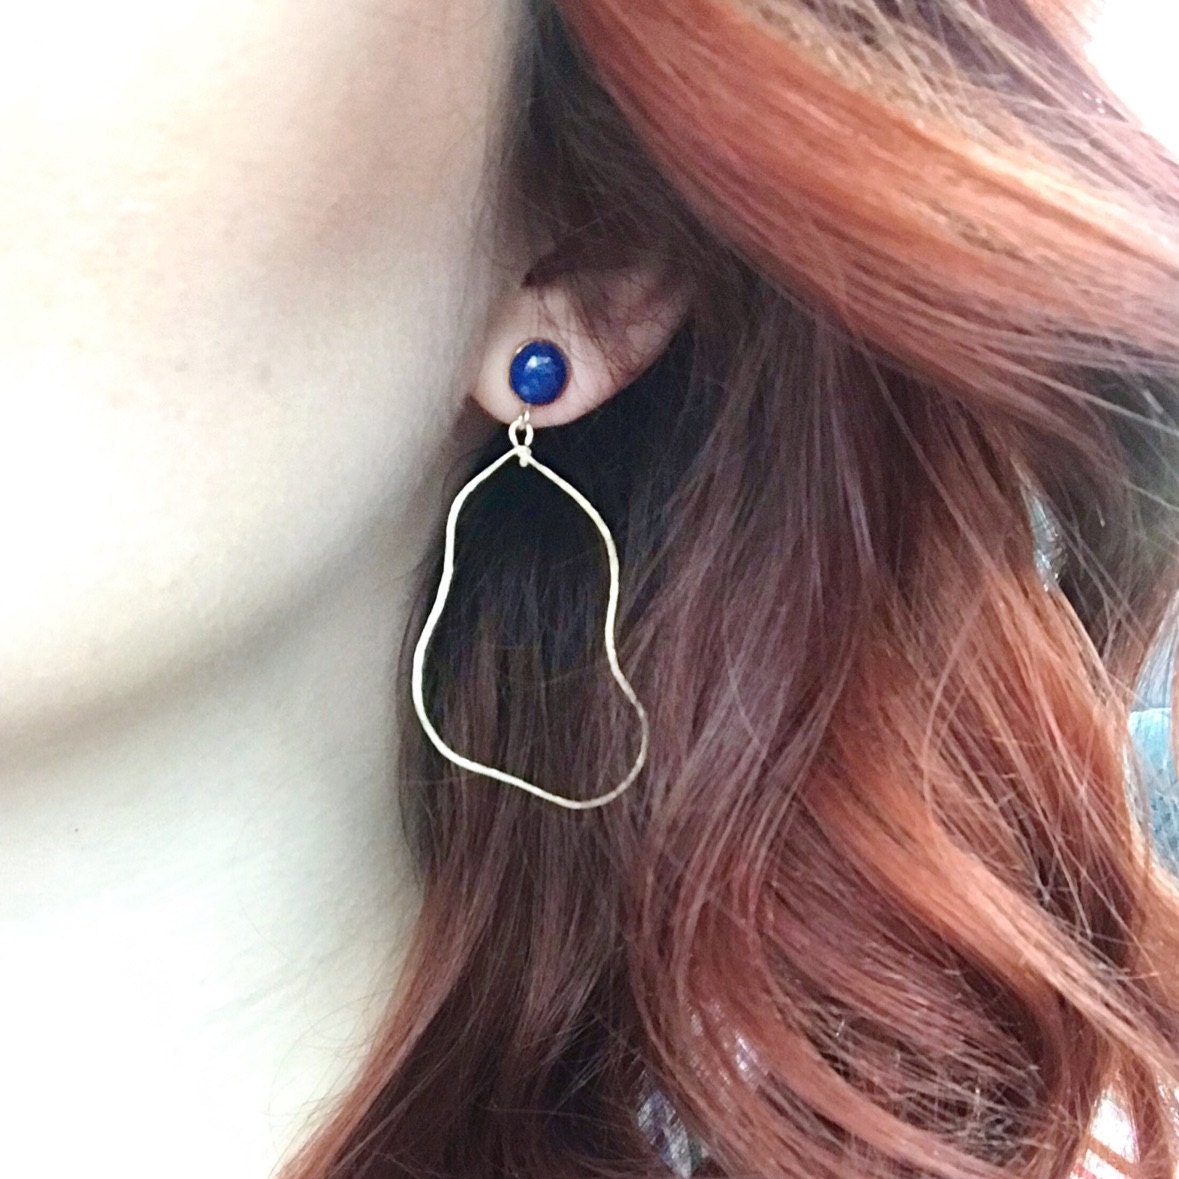 Brittany Porter added a photo of their purchase